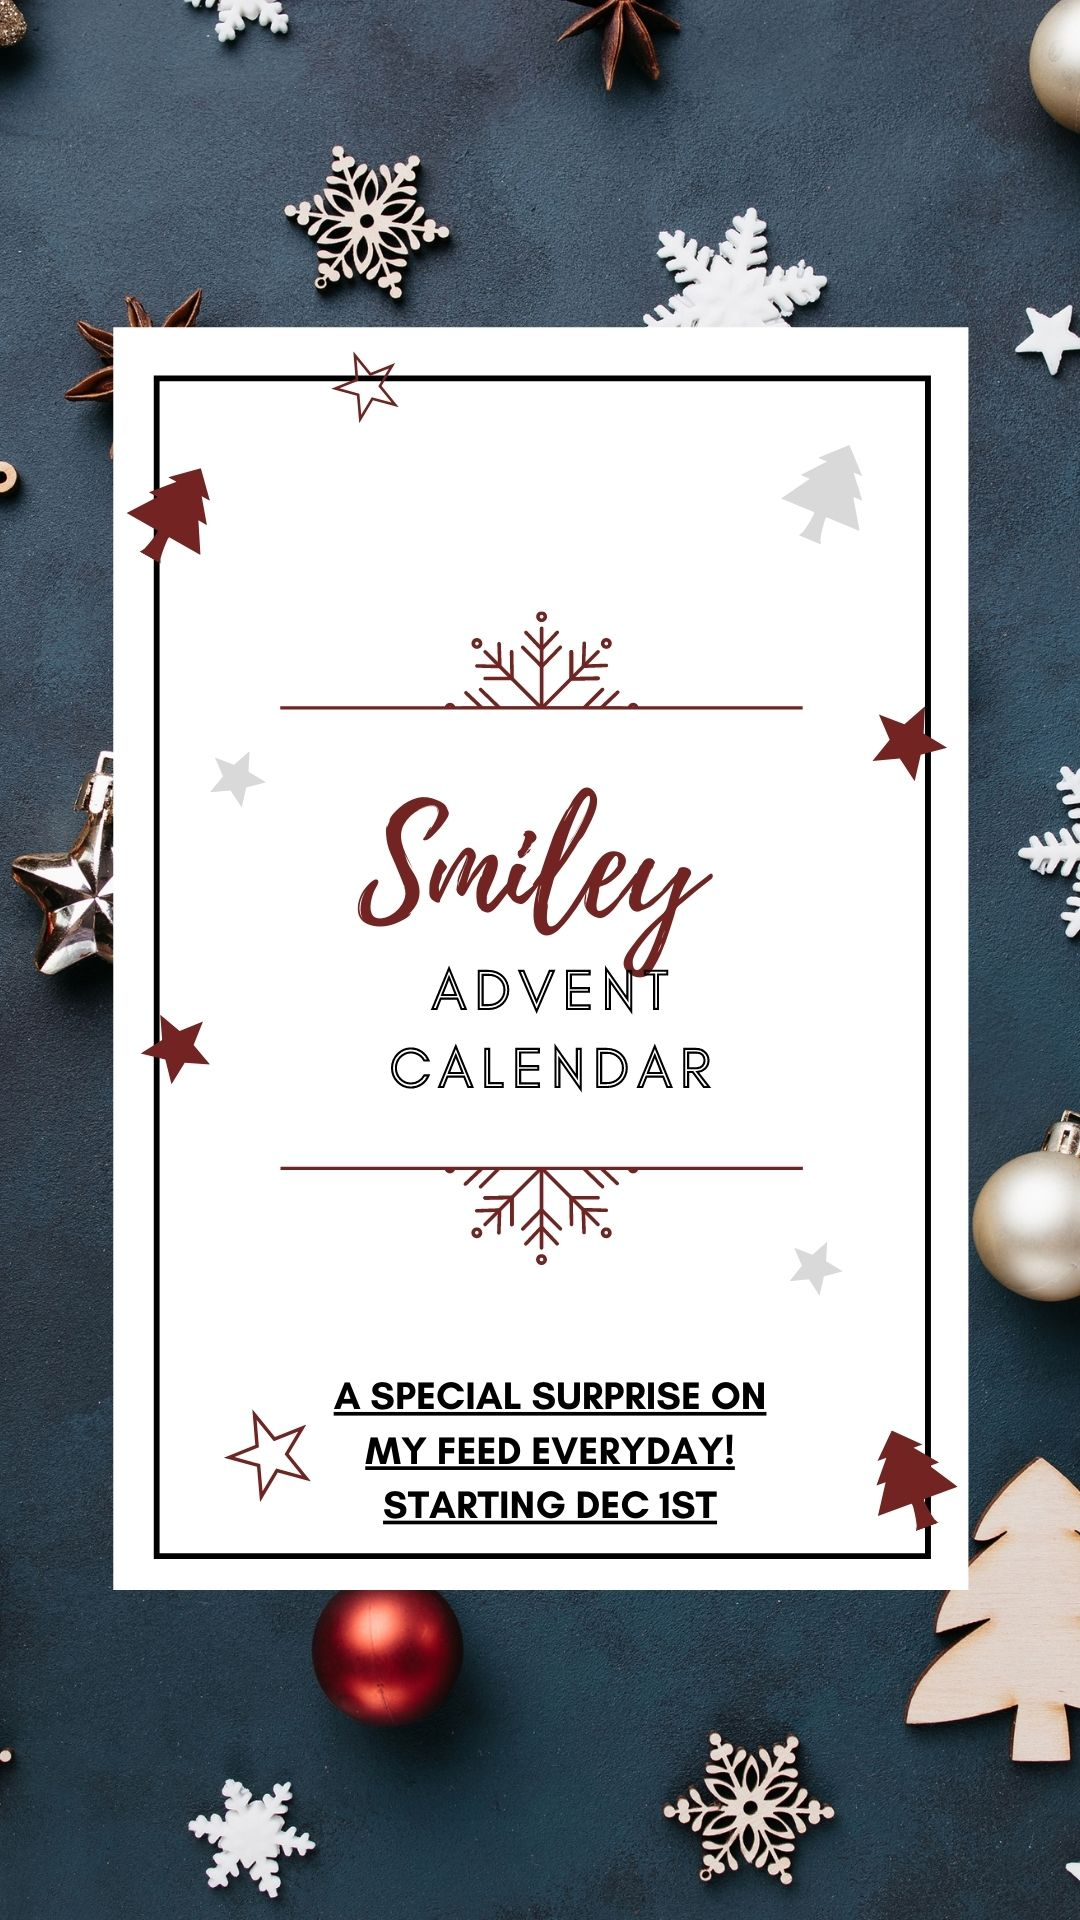 Advent calendar announcement